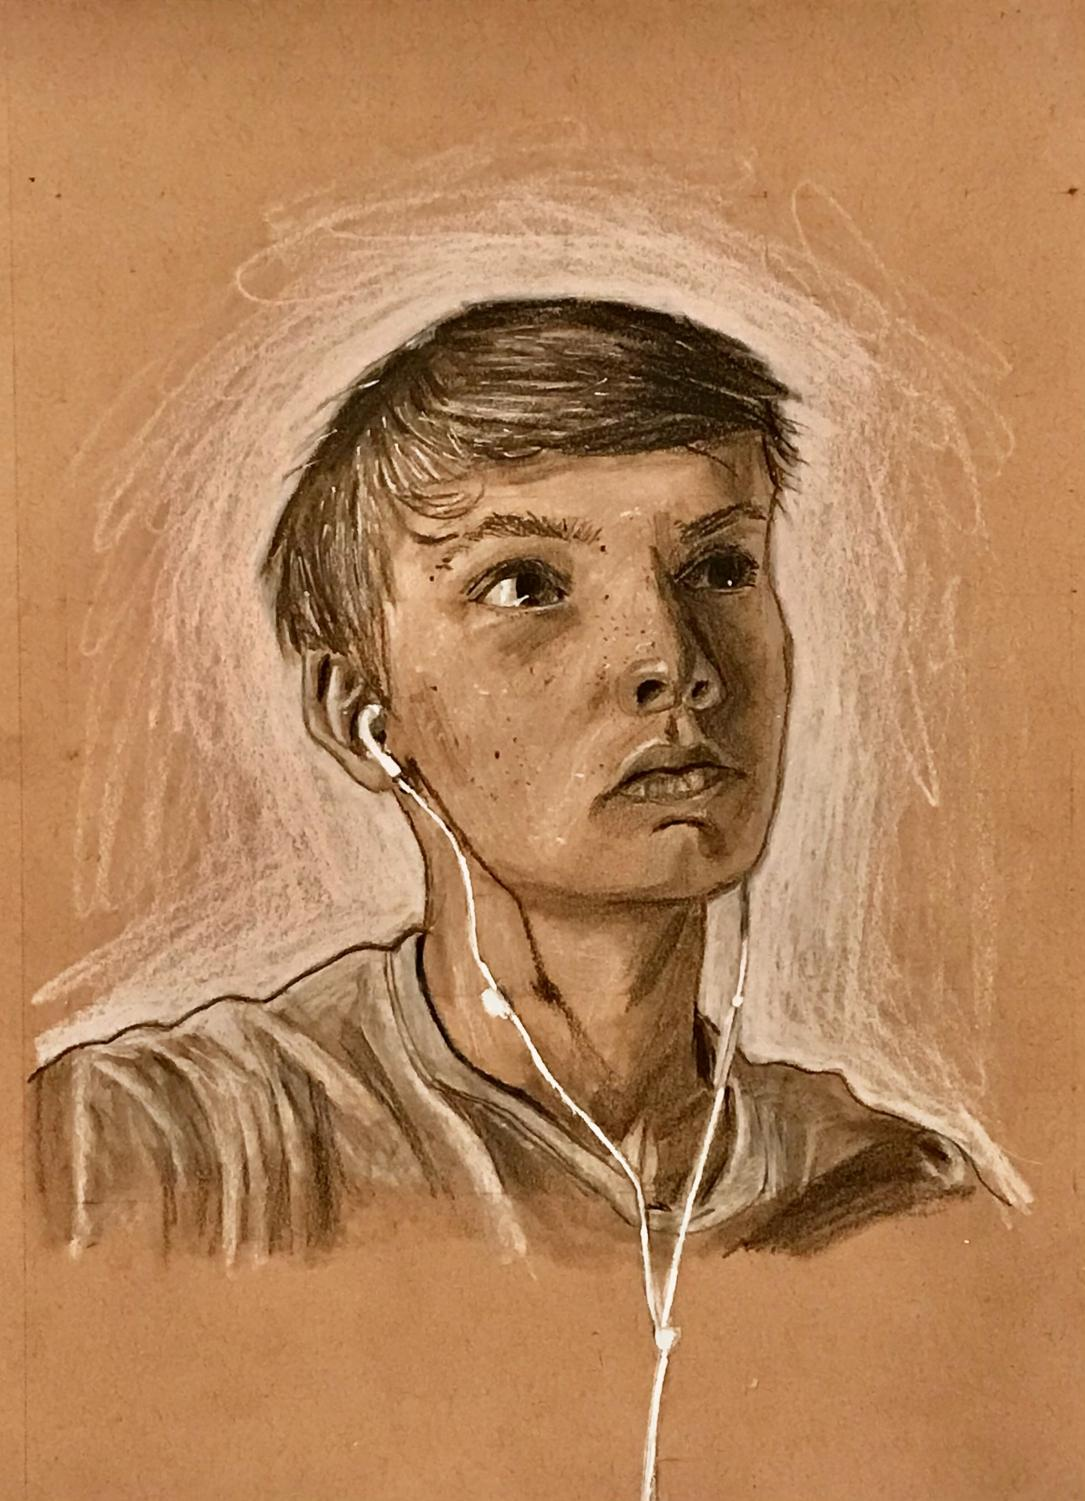 A self portrait made using charcoal, black and white colored pencil, and a white paint pen.